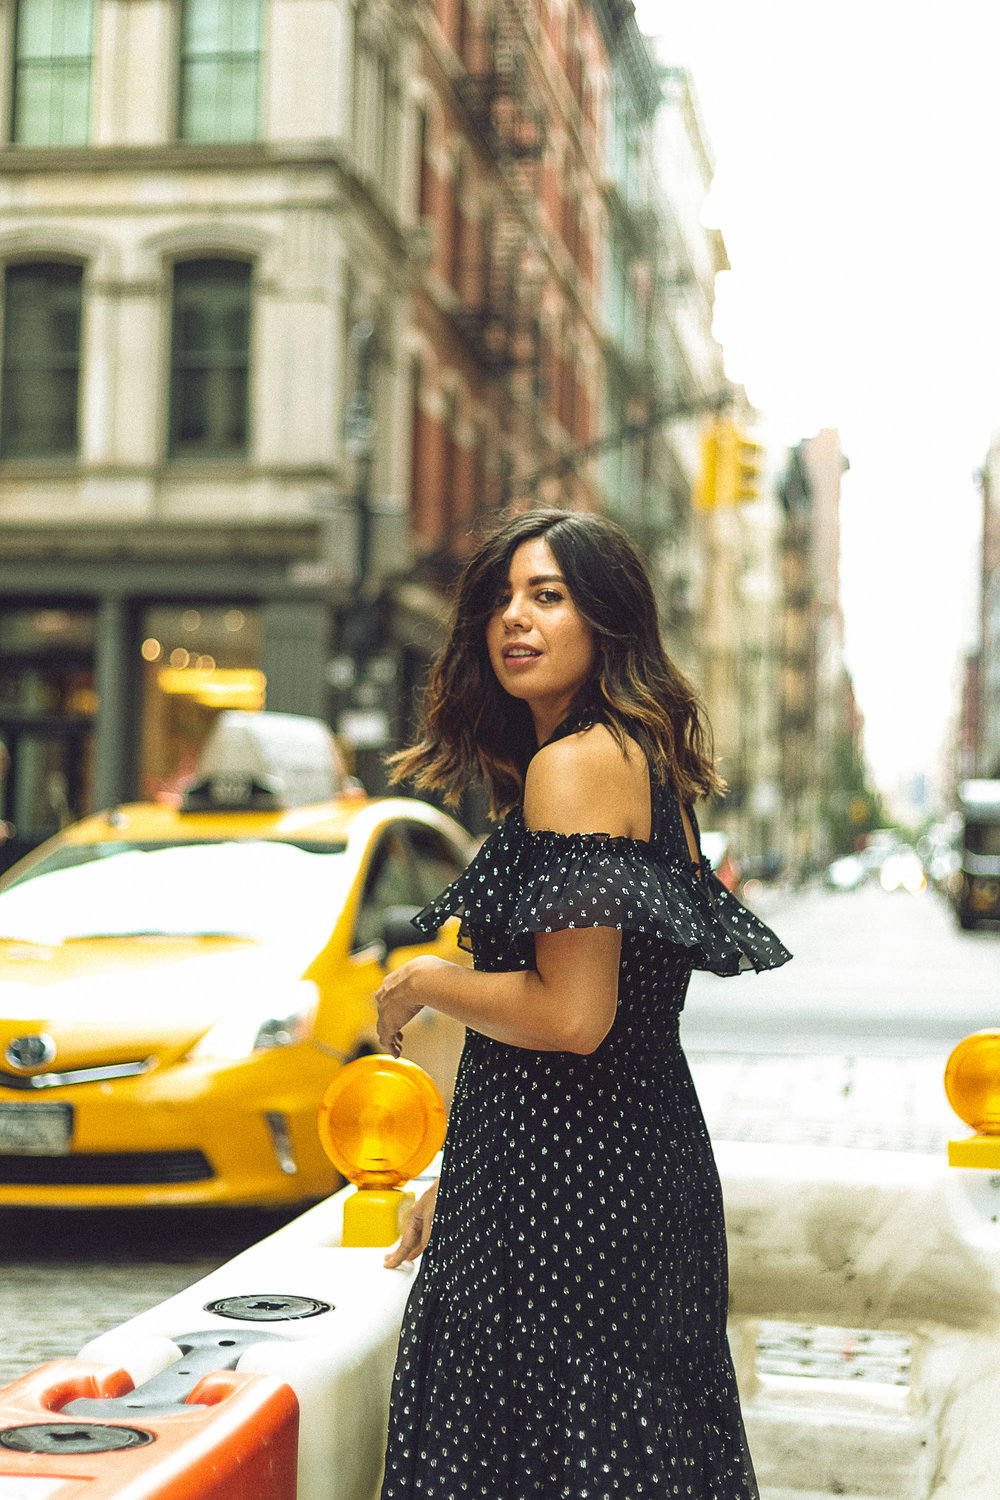 Rachel Off Duty: A Woman Poses in Front of NYC Yellow Cabs